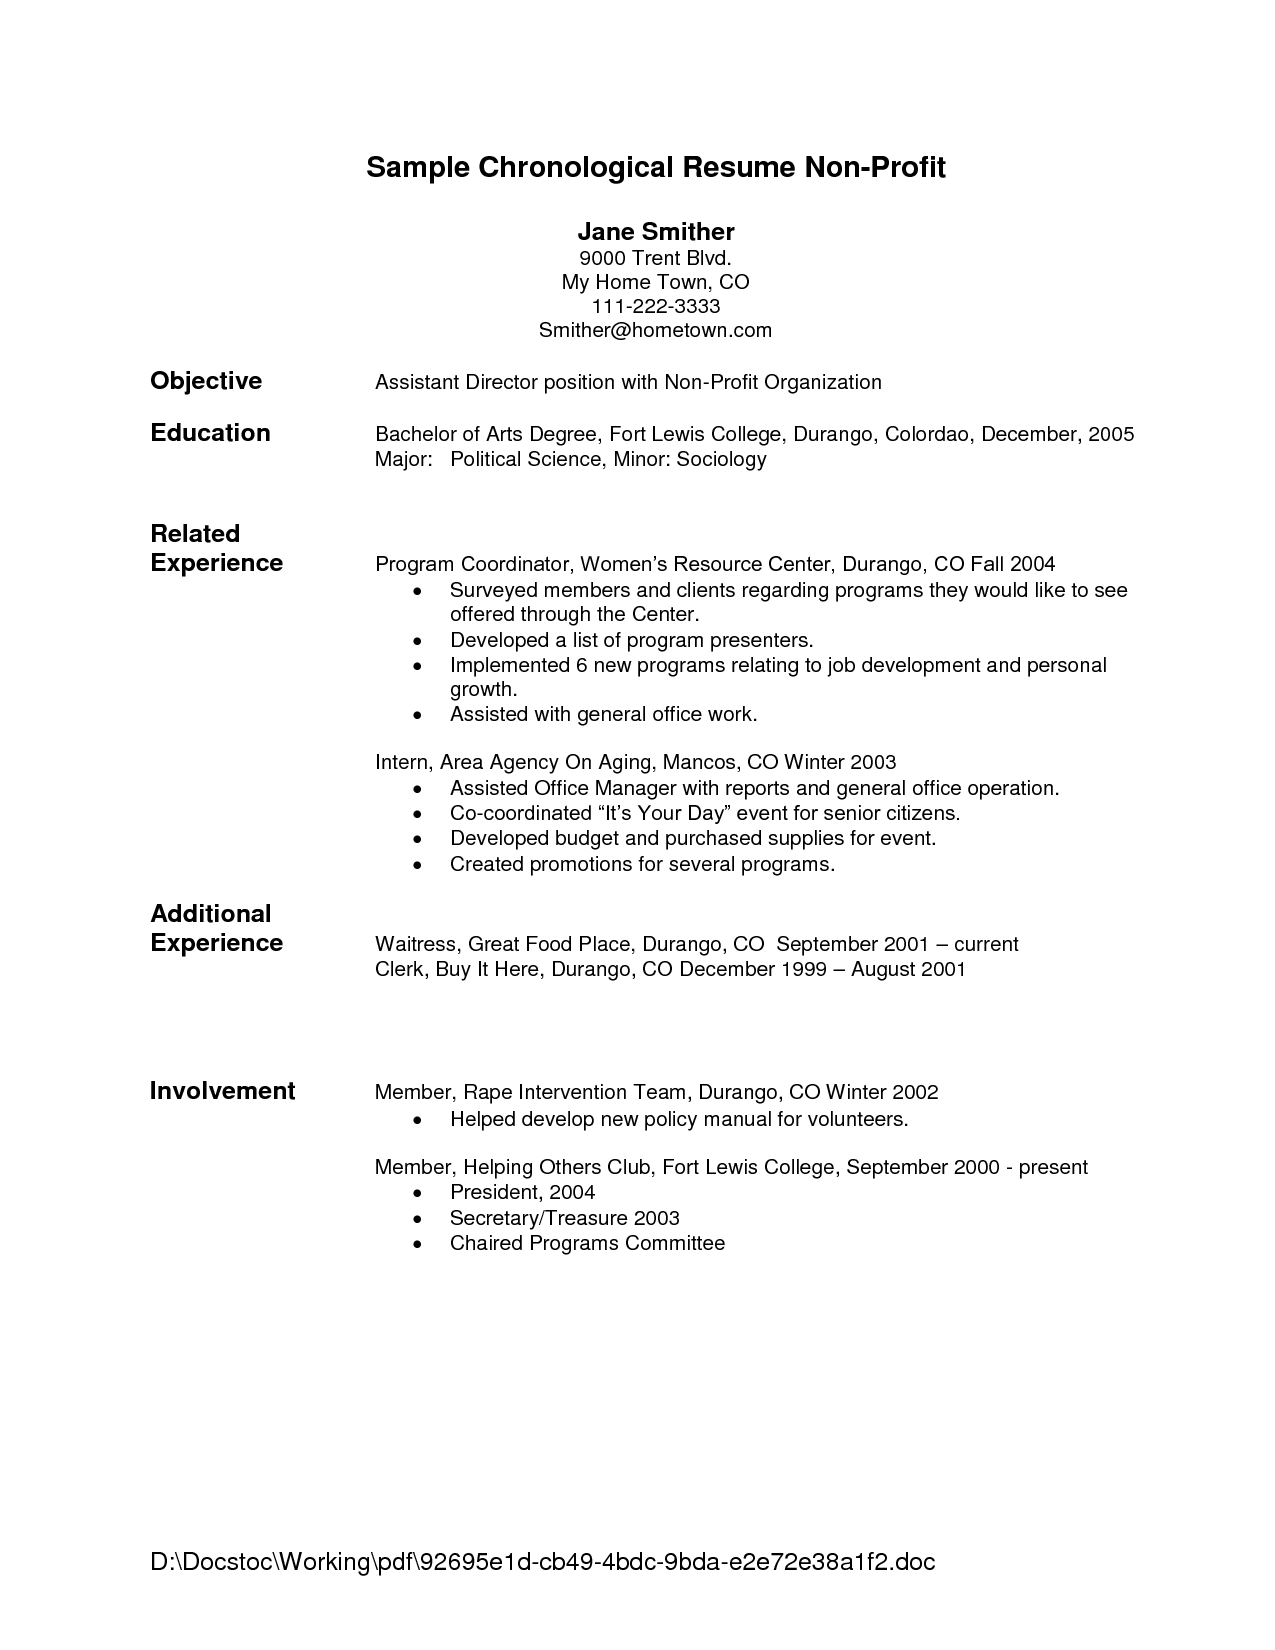 Waitress Resume Template Examples | Sample Resume Center | Pinterest